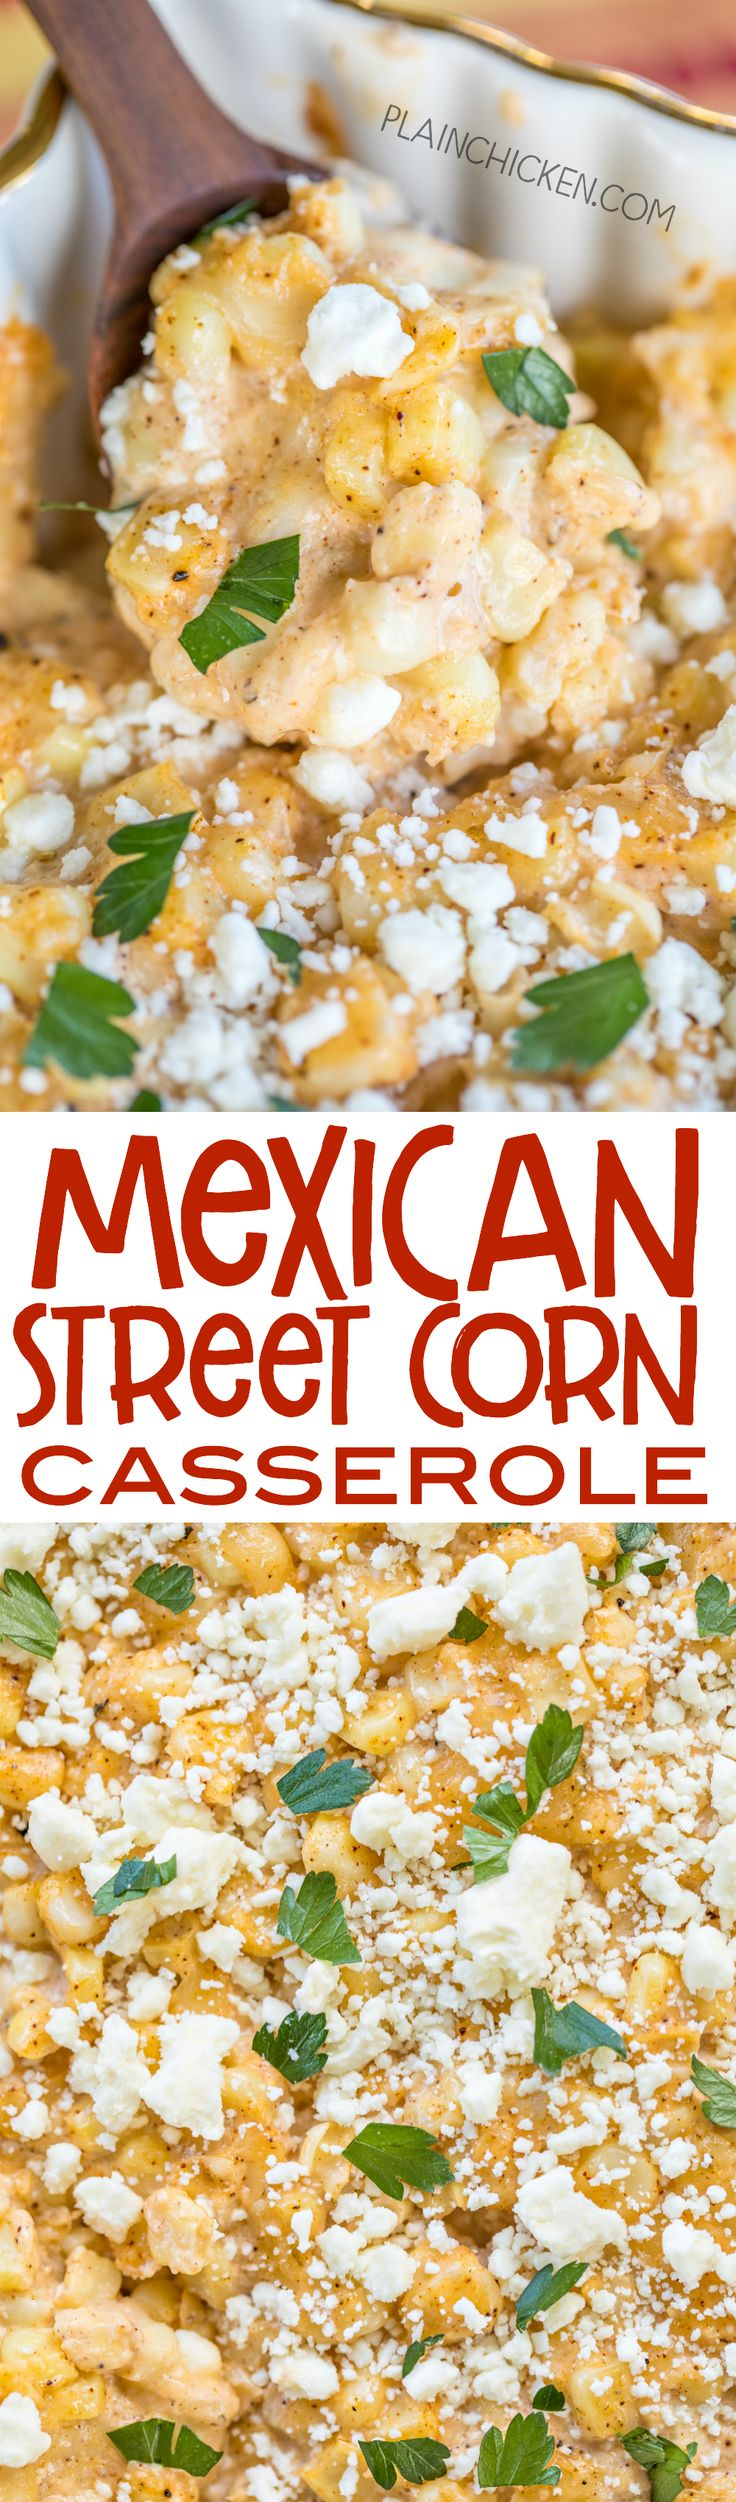 Mexican Street Corn Casserole - ll the flavors of Mexican street corn but requires no flossing after eating! Corn, mayonnaise, sour cream, lime, parmesan, pepper jack, chili powder and feta. Can make ahead of time and refrigerate until ready to make. Great for potlucks, cookouts and the holidays! You might want to double the recipe - this doesn't last long!